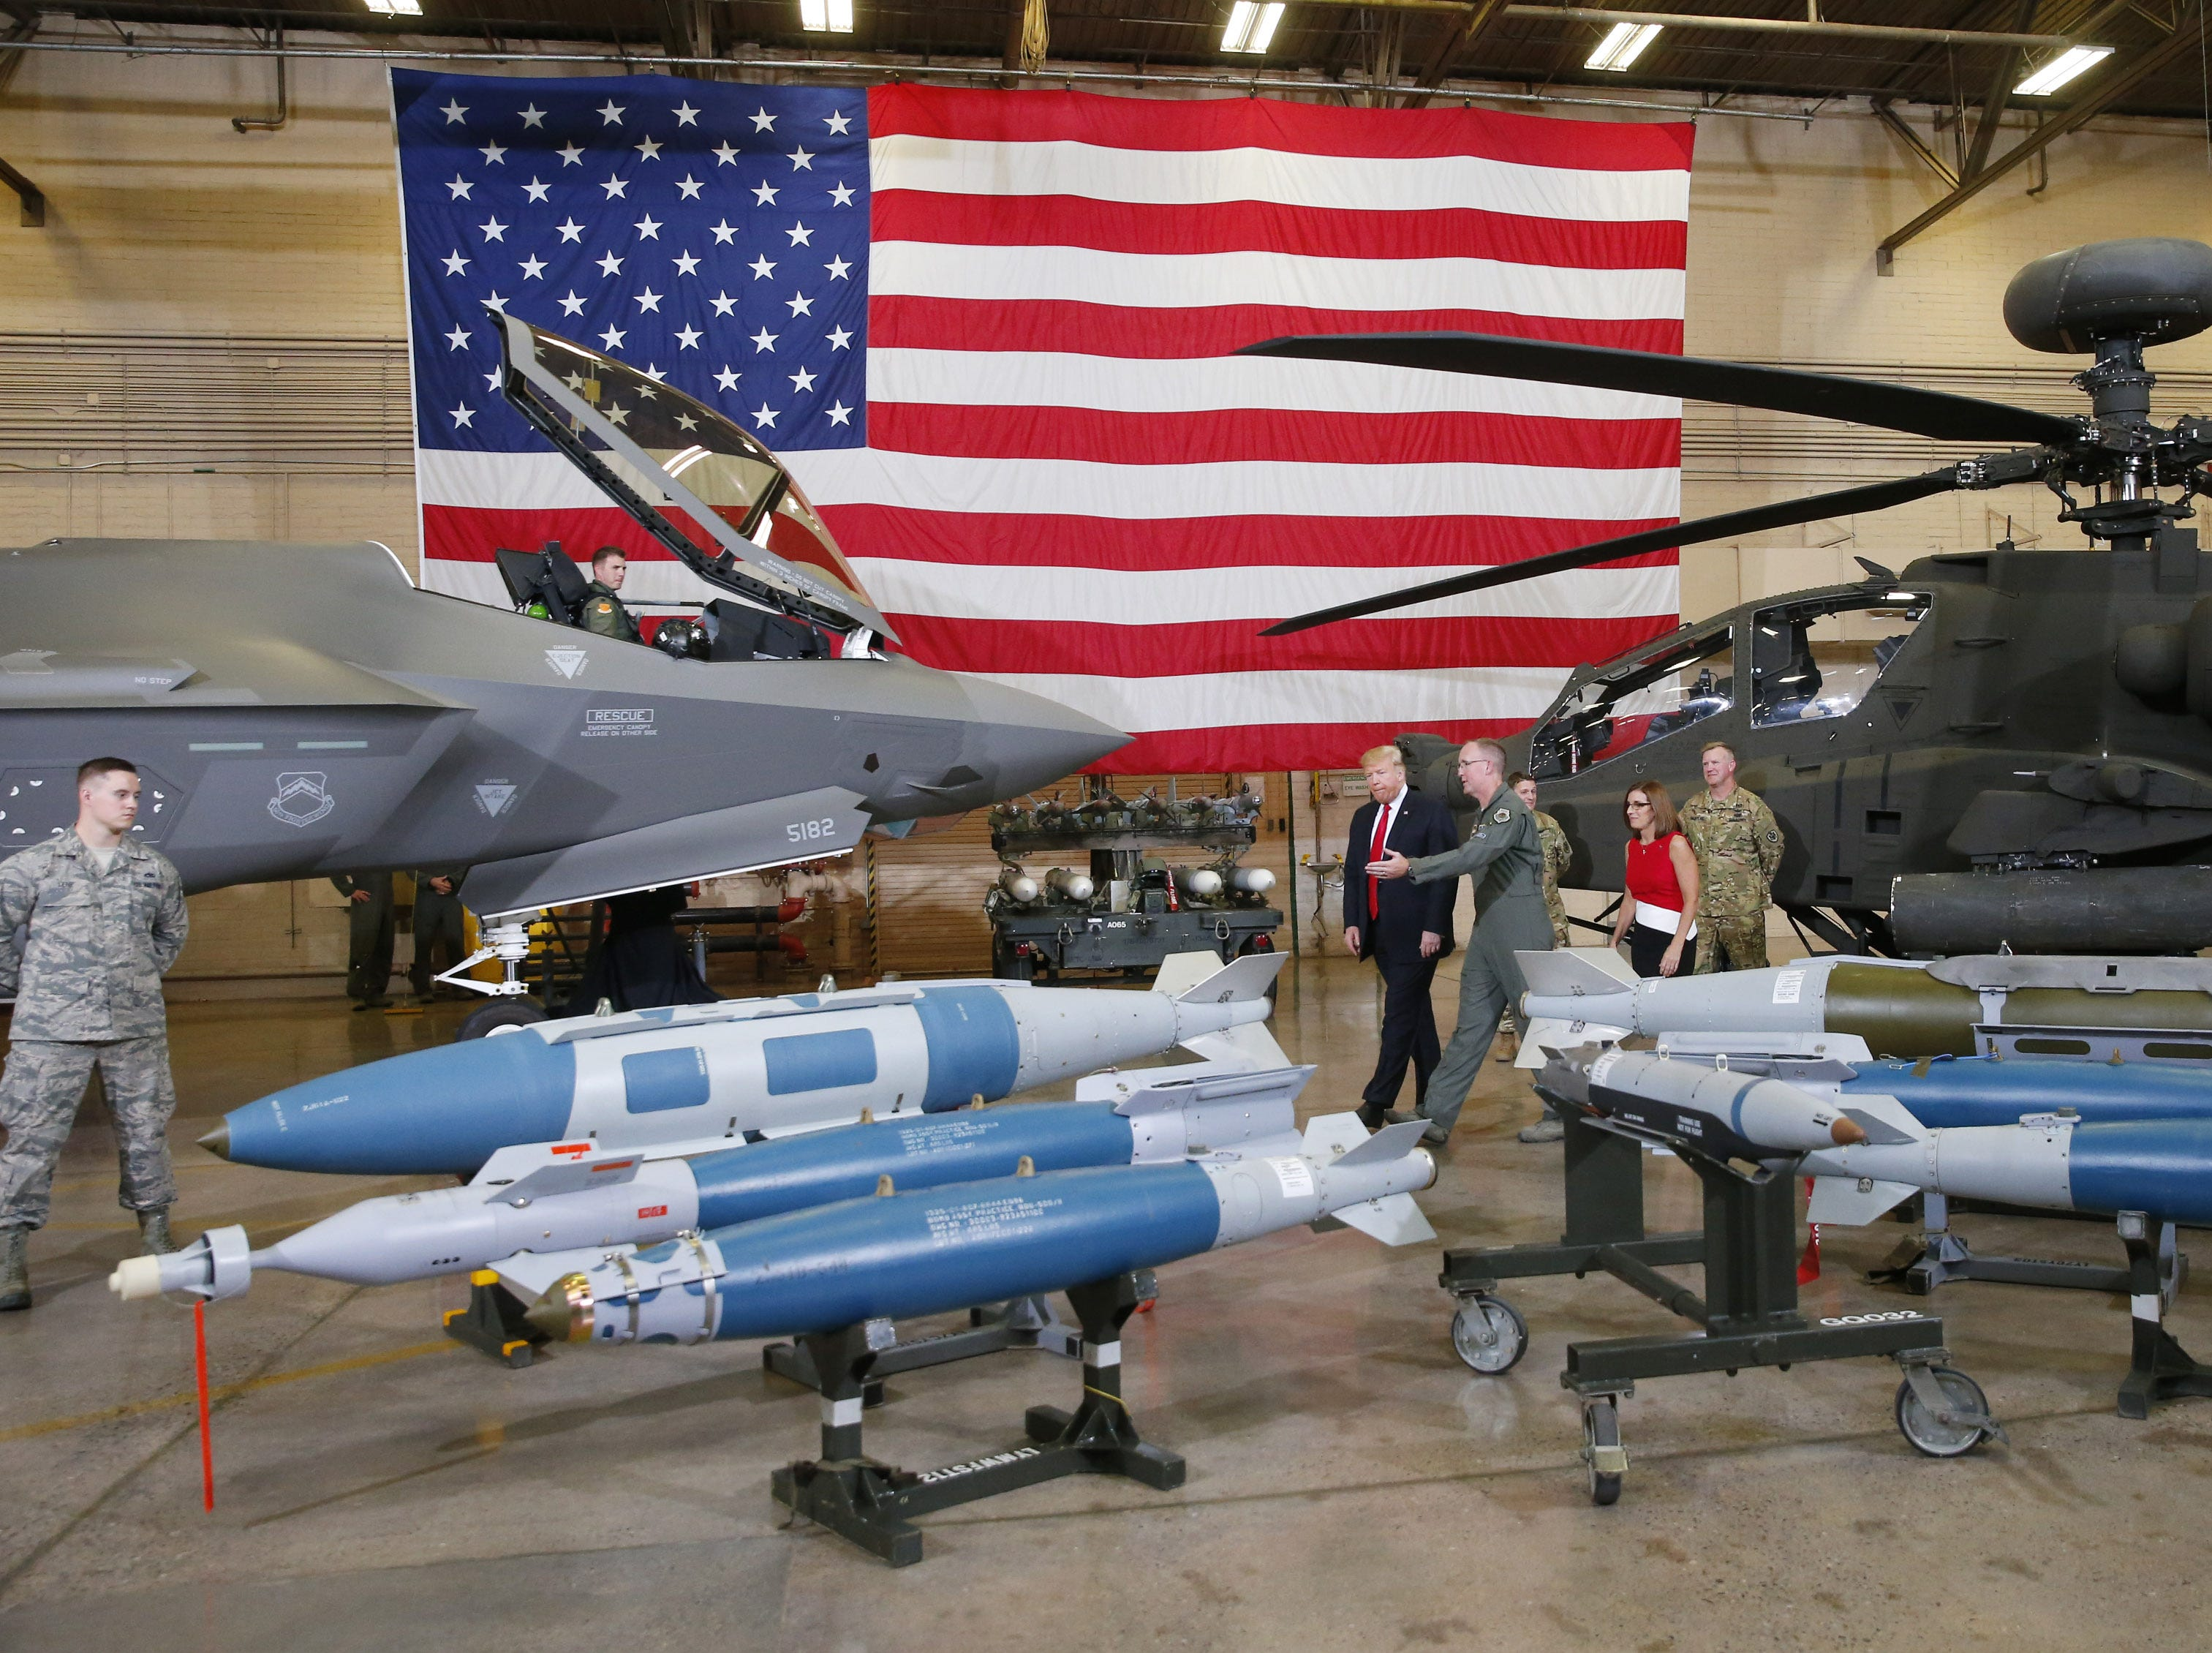 Gen. Todd Canterbury, 56th fighter wing commander, gives a tour to President Donald Trump at Luke Air Force Base in Glendale on Oct. 19, 2018.